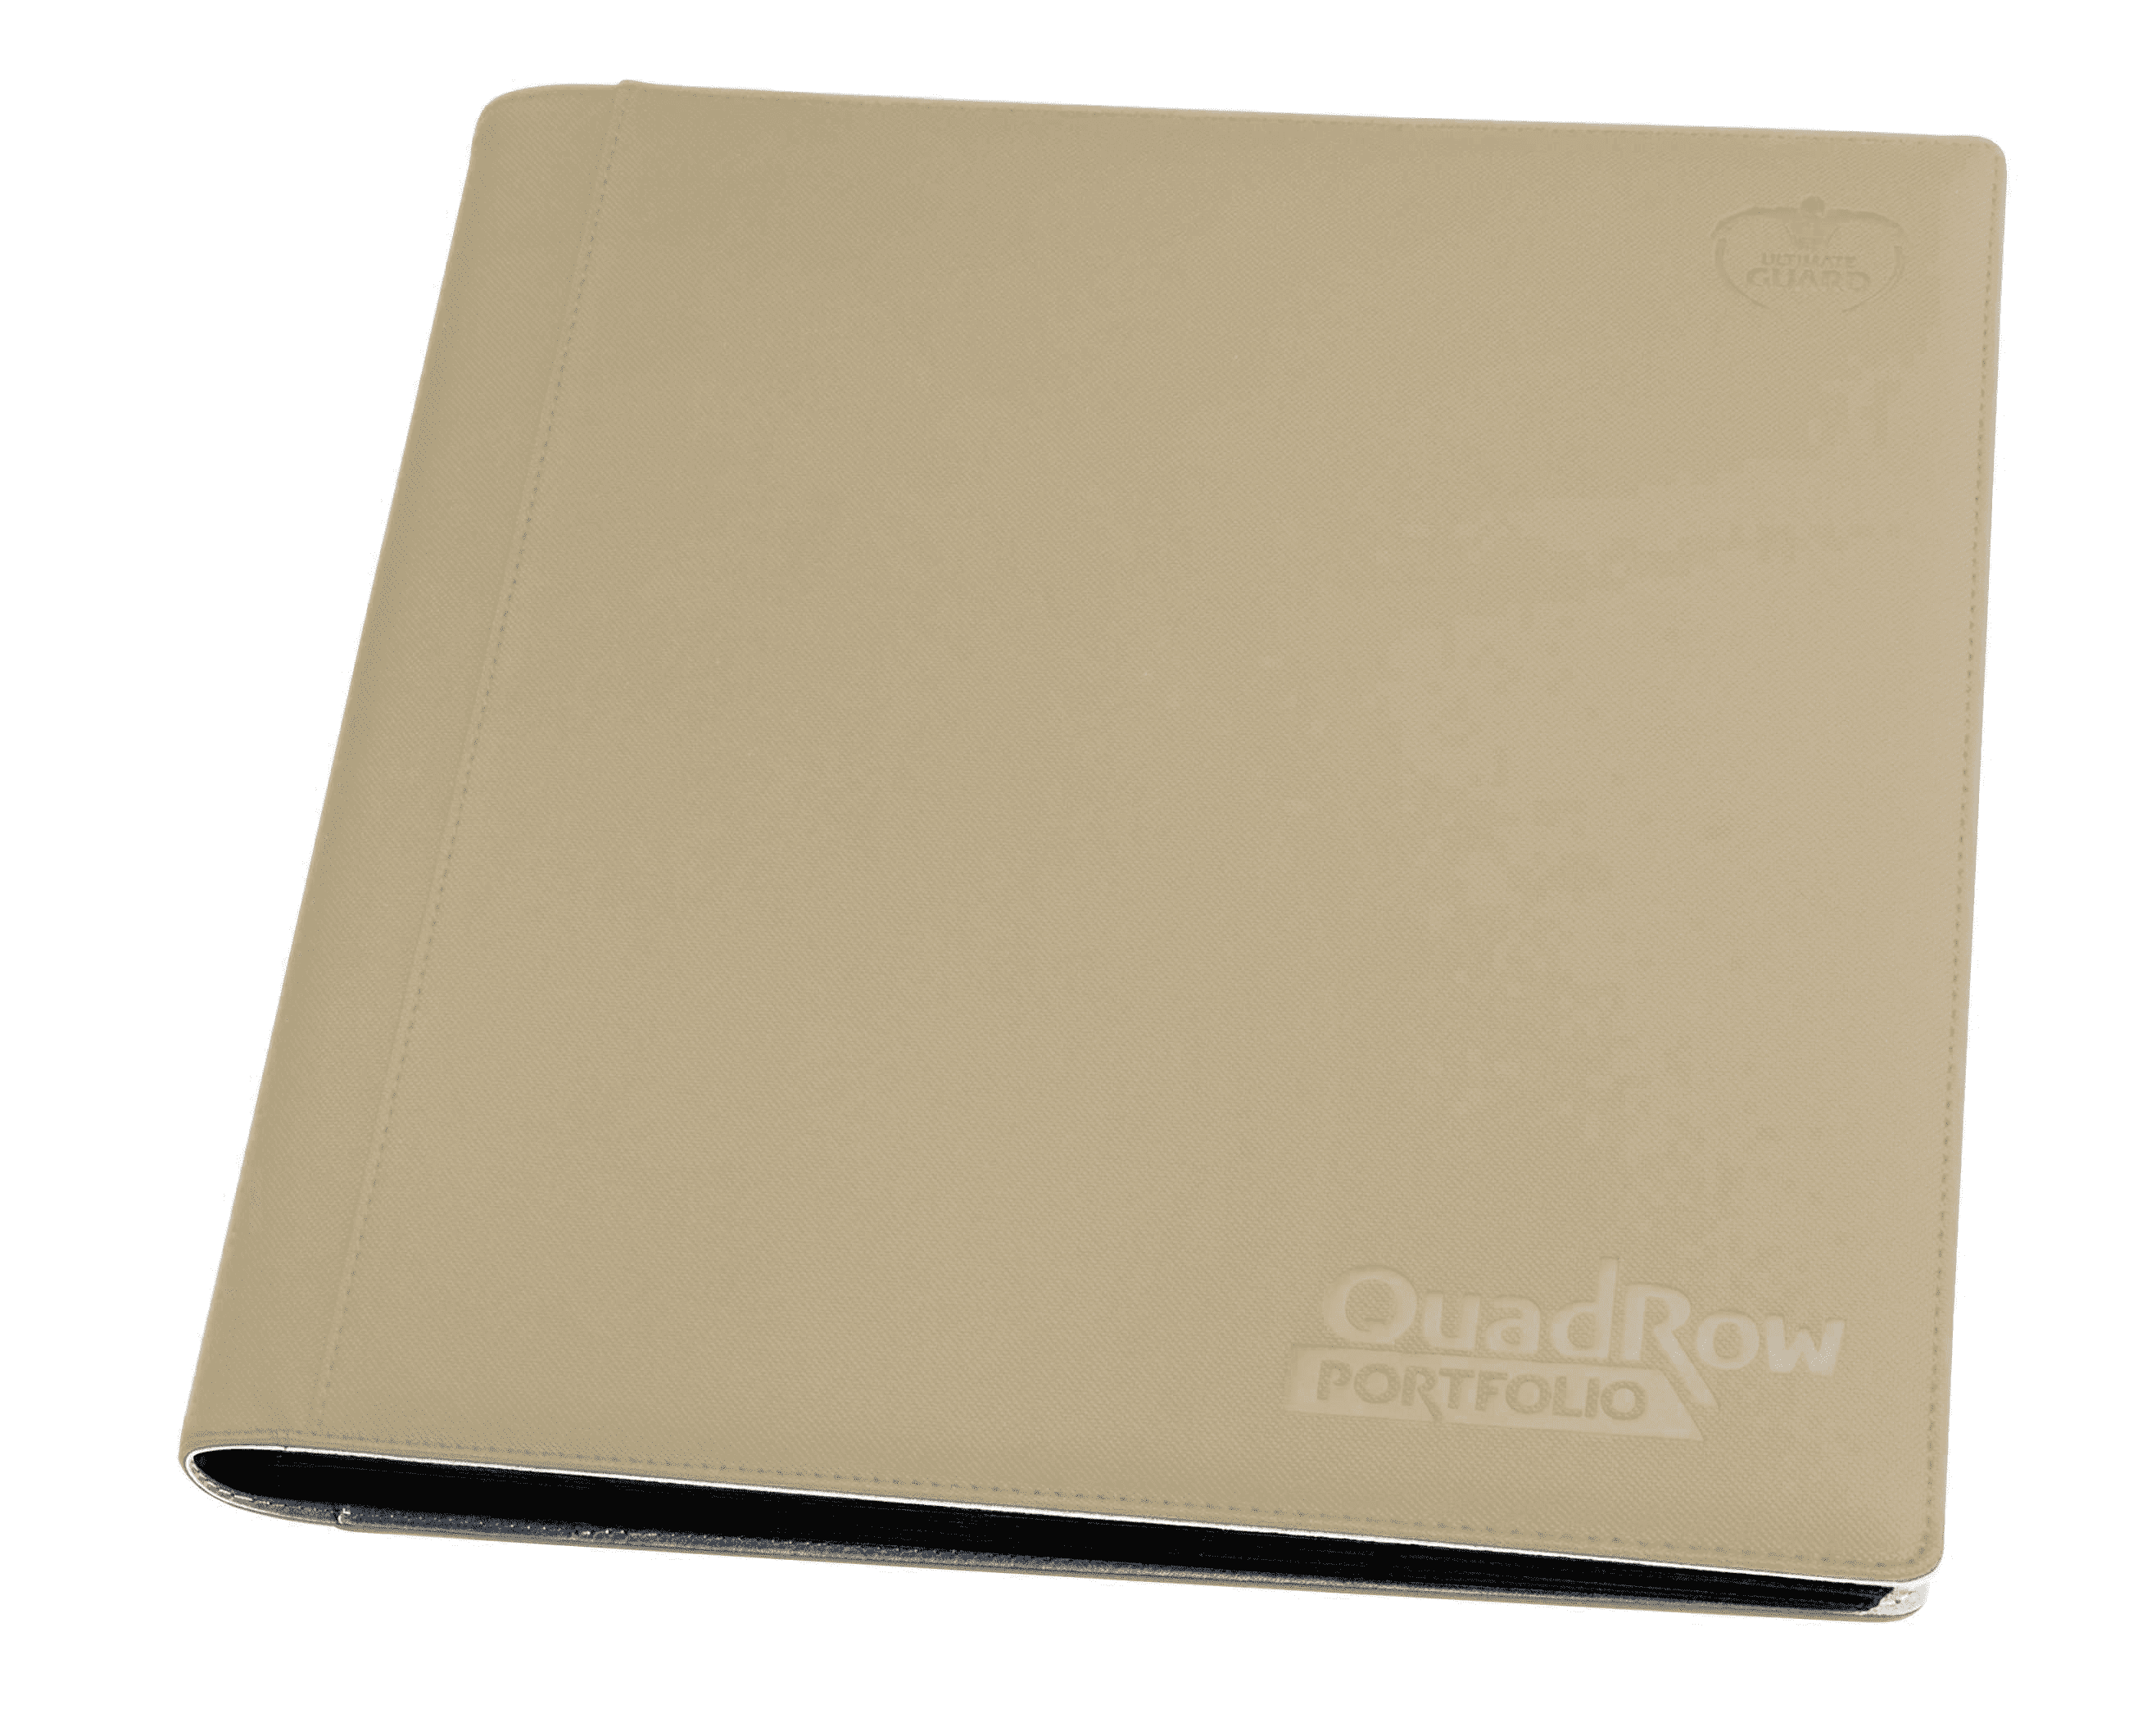 Ultimate Guard - QuadRow Portfolio - Sand